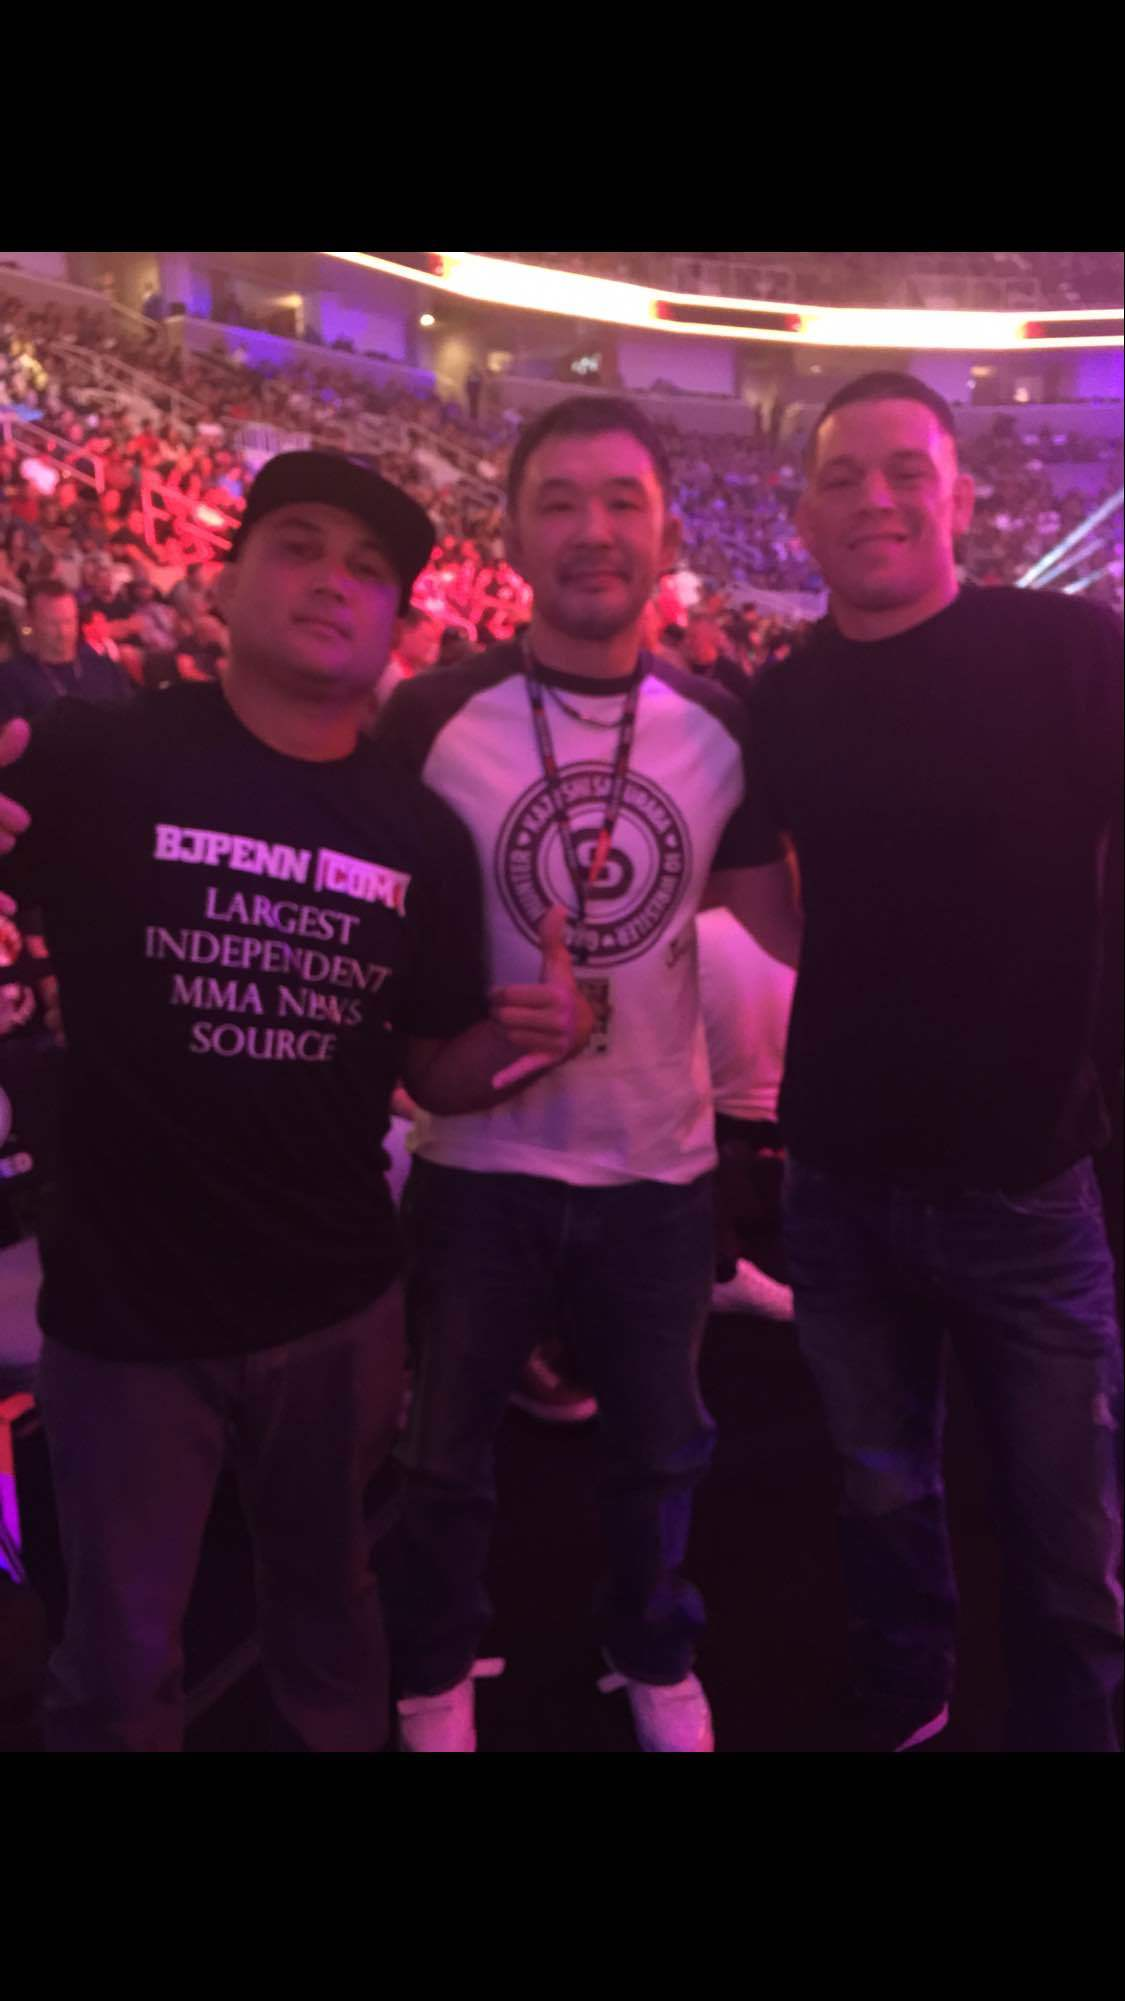 With bj and sakuraba at the fights https://t.co/HmKrPCmdHX http://t.co/x3FD7QNYHr